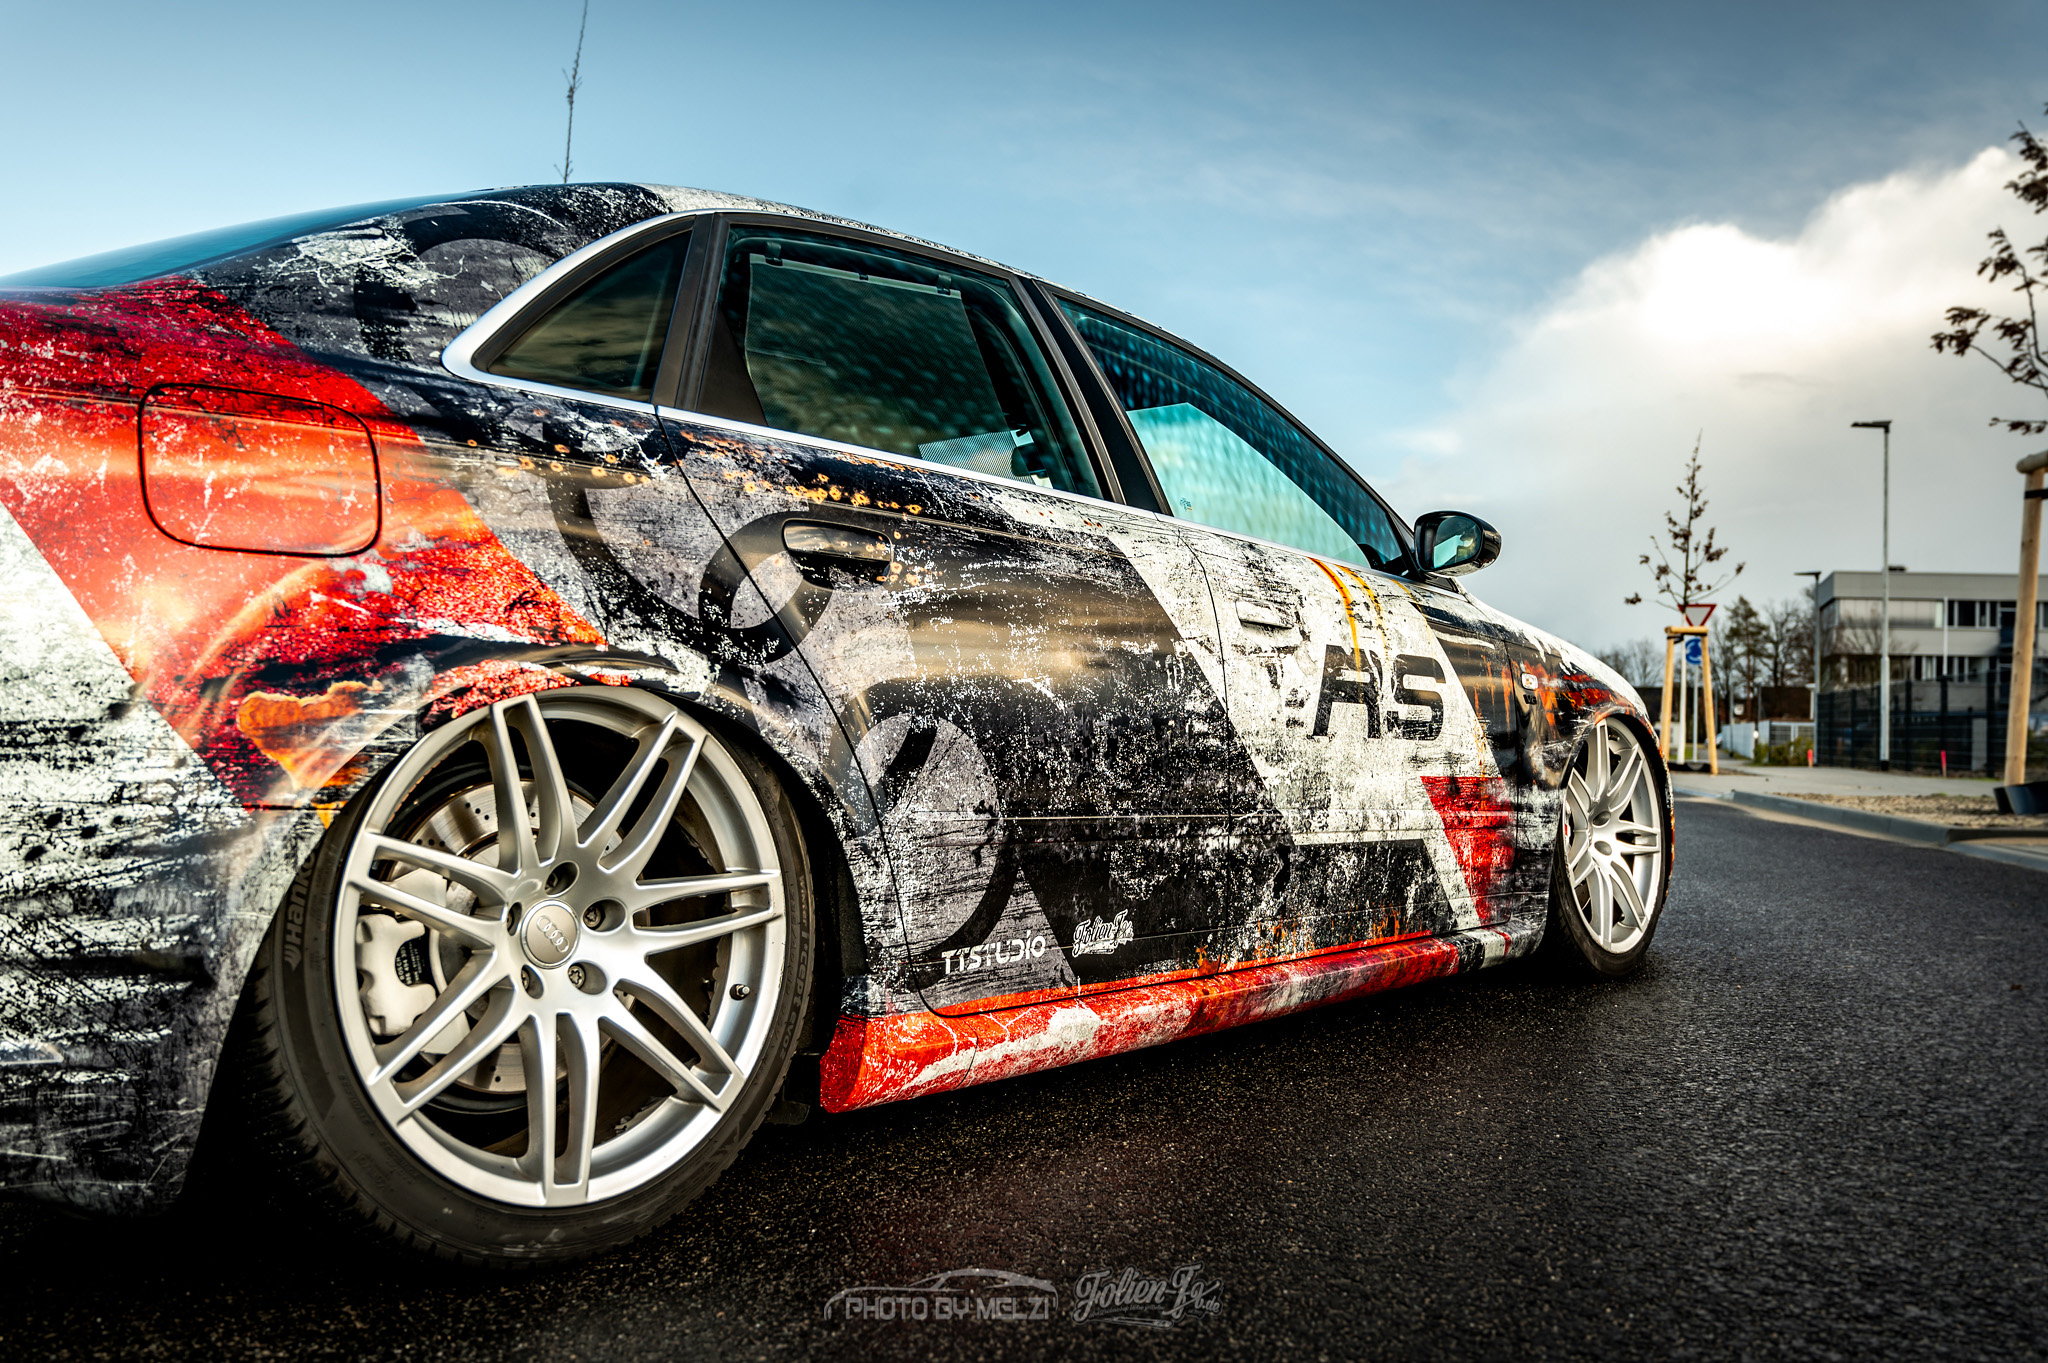 💥 Audi RS4 dirty livery 💥